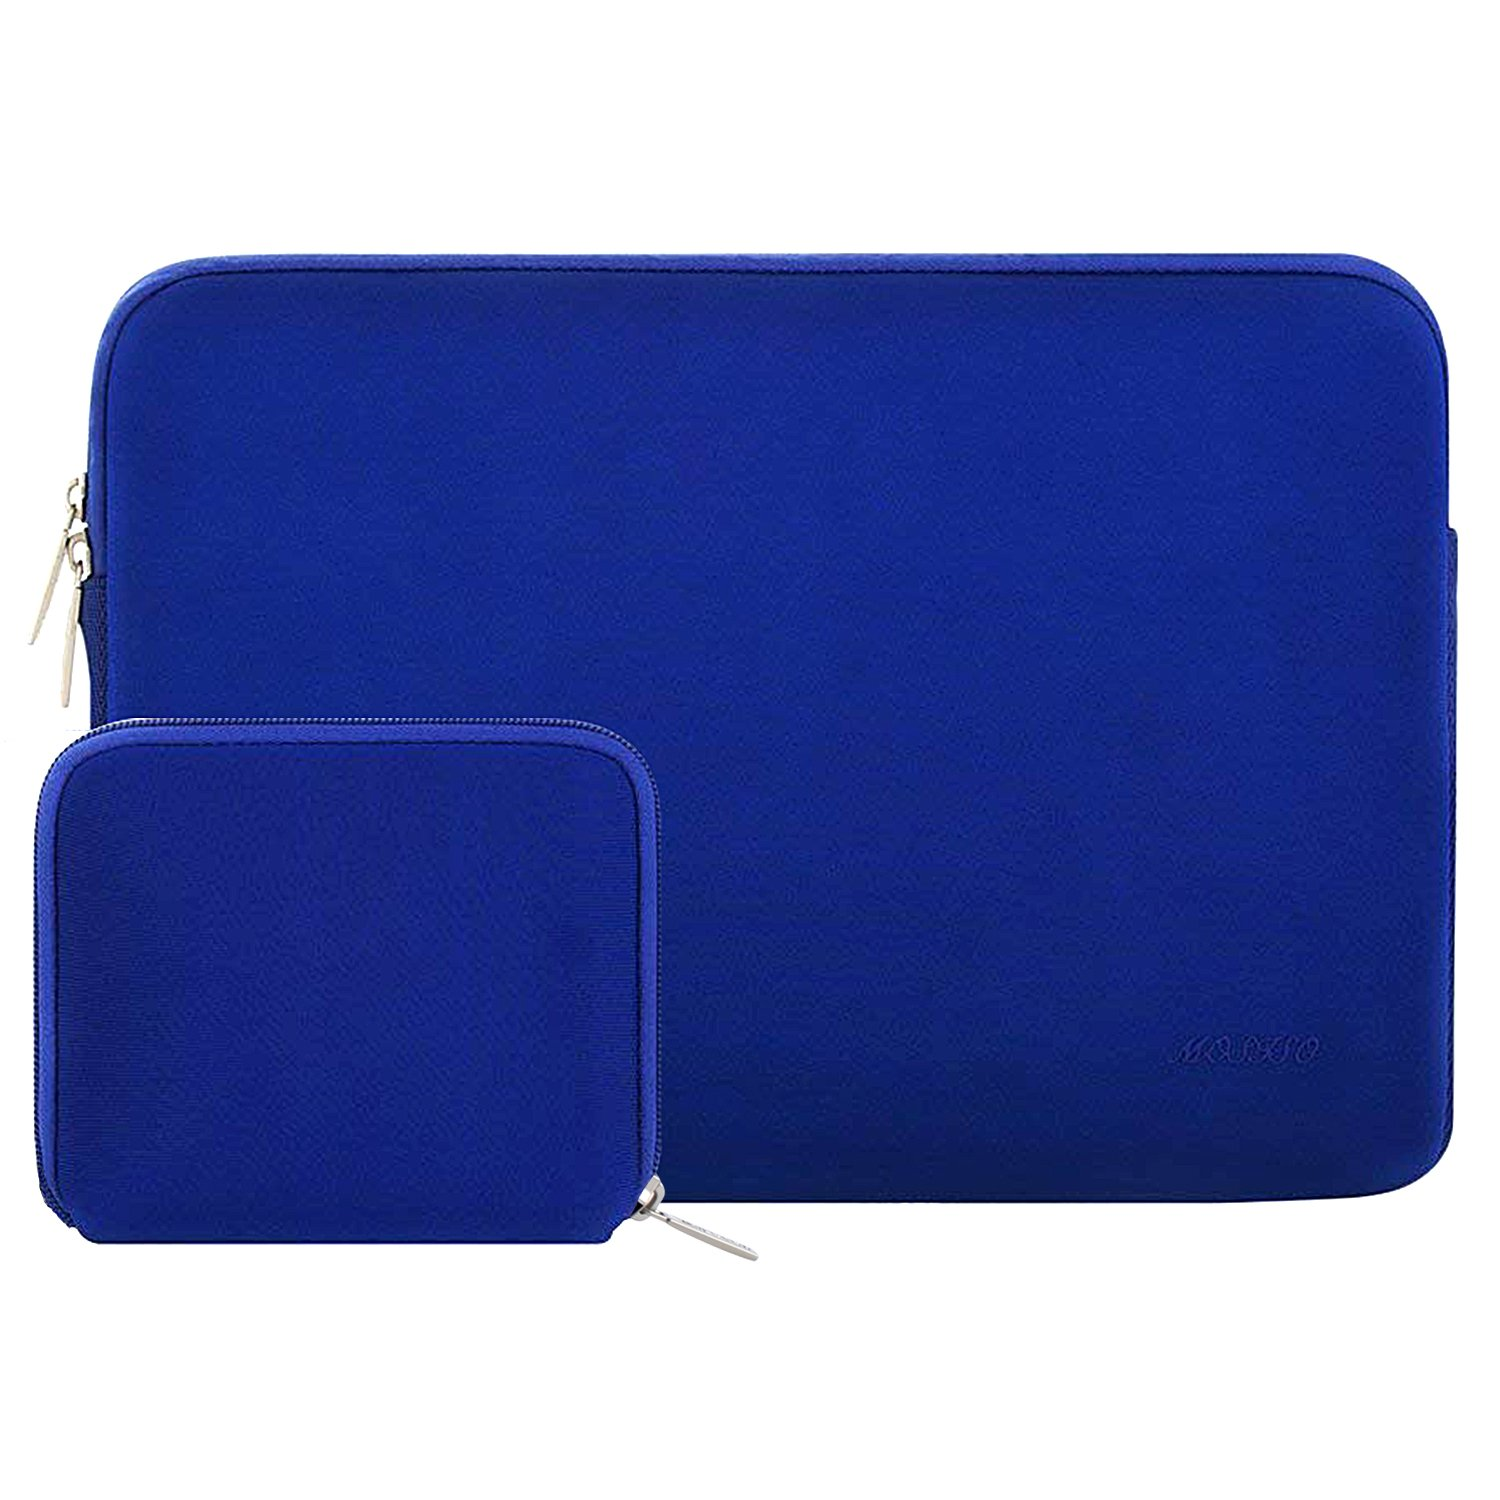 MOSISO Laptop Sleeve Compatible with 2019 2018 MacBook Air 13 inch A1932, 13 inch MacBook Pro A2159 A1989 A1706 A1708, Notebook, Water Repellent Neoprene Bag with Small Case, Royal Blue